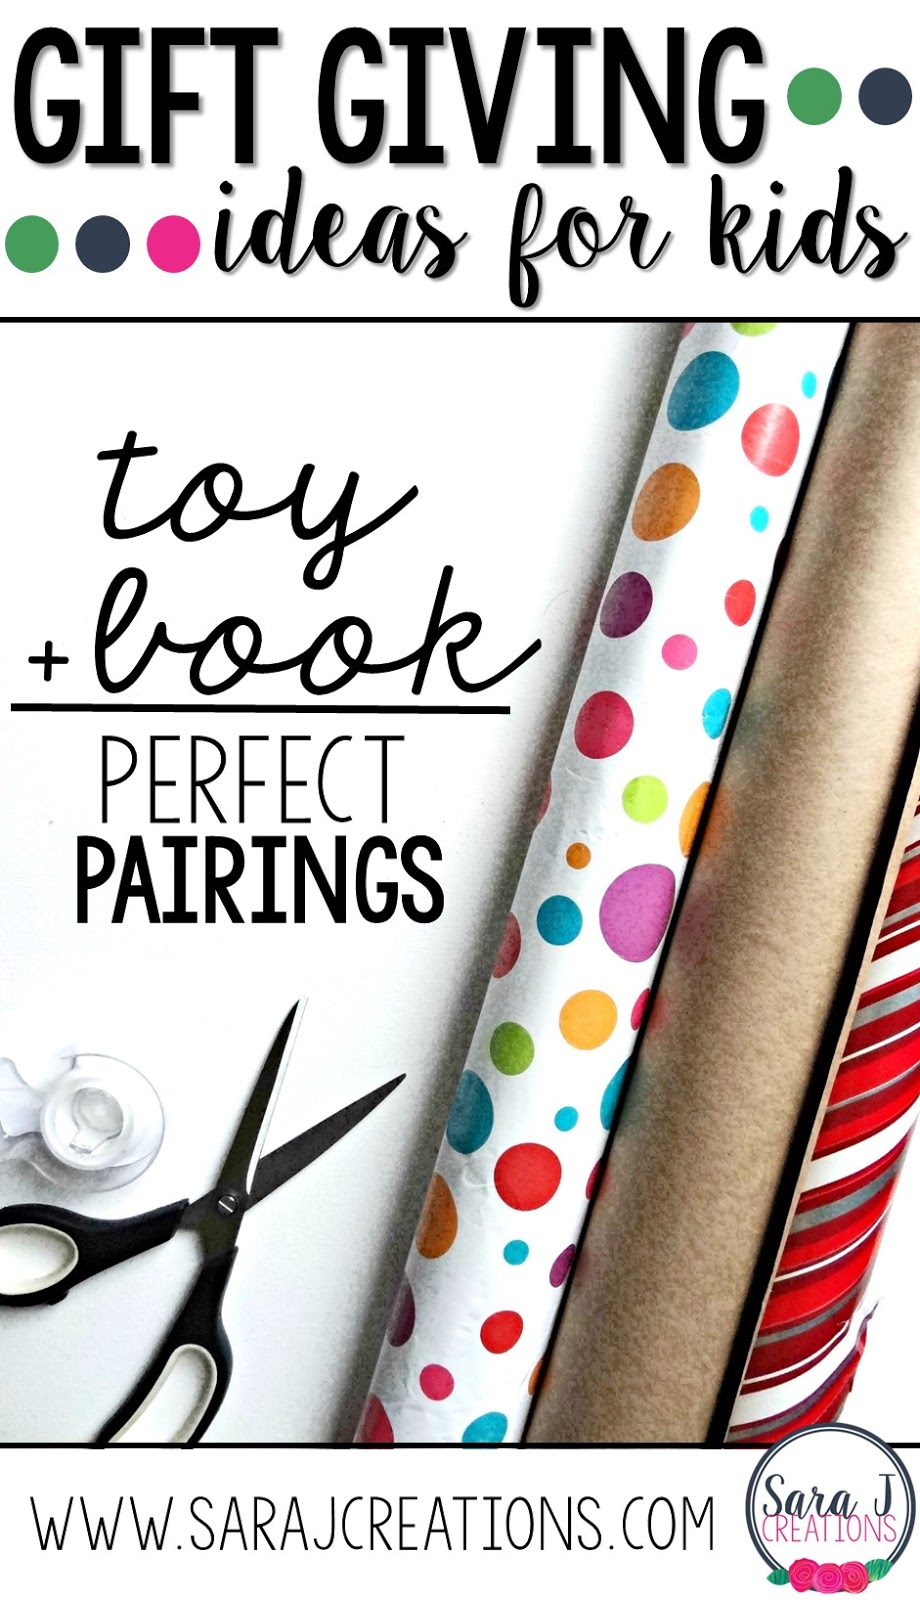 7 ideas for picture book and toy pairings to give as gifts for children